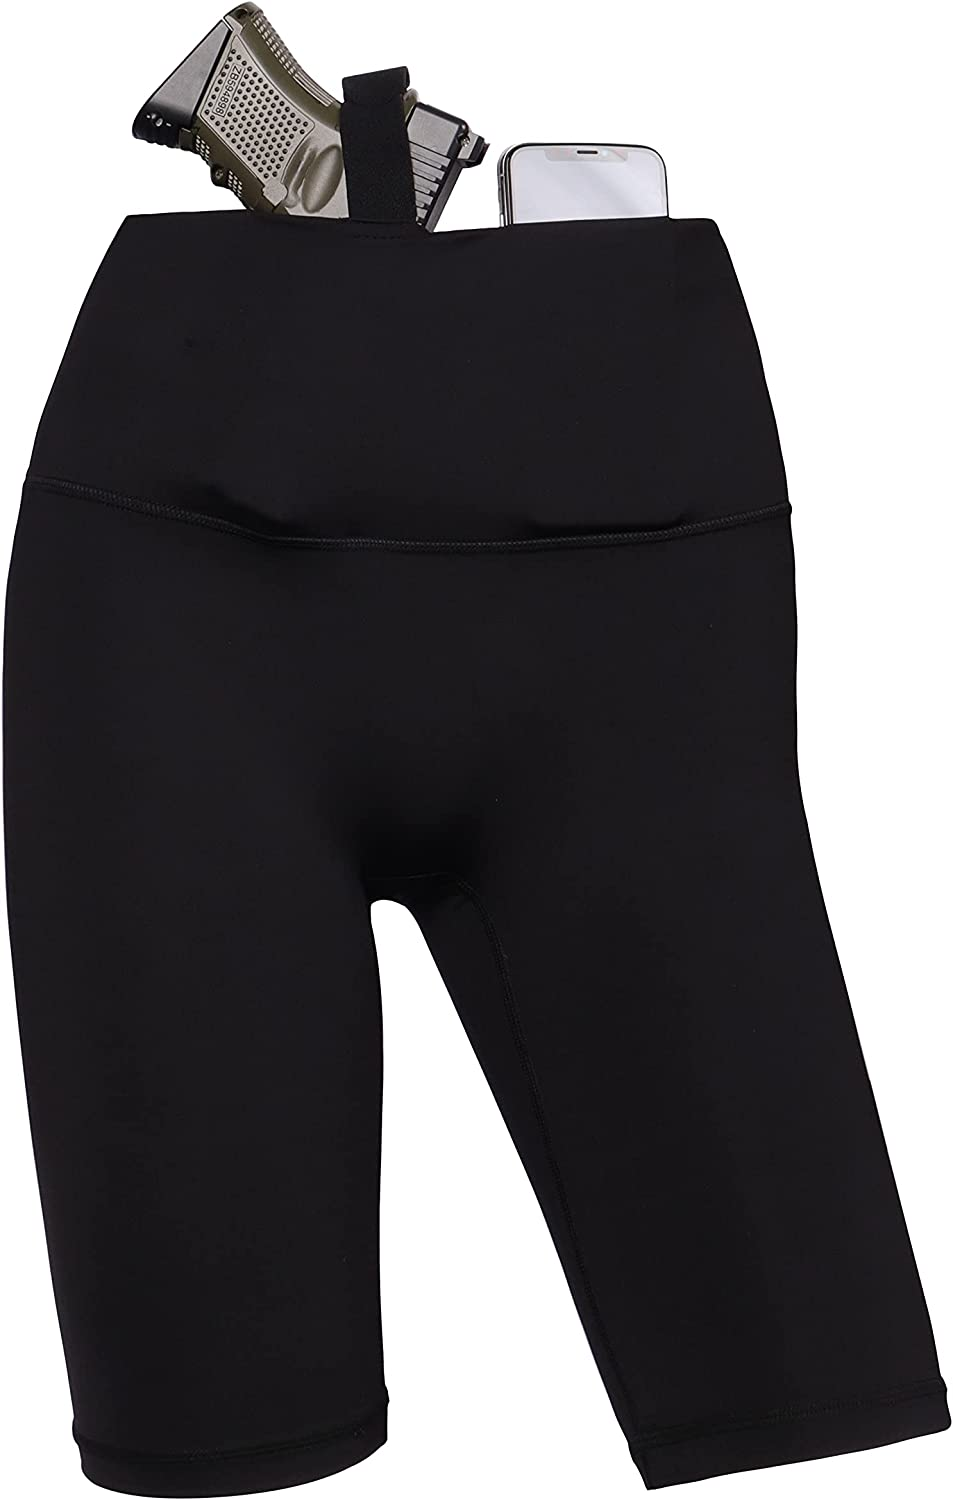 Lilcreek Women's gift 5 ☆ very popular Concealed Leggings Undercover Holster Concealme